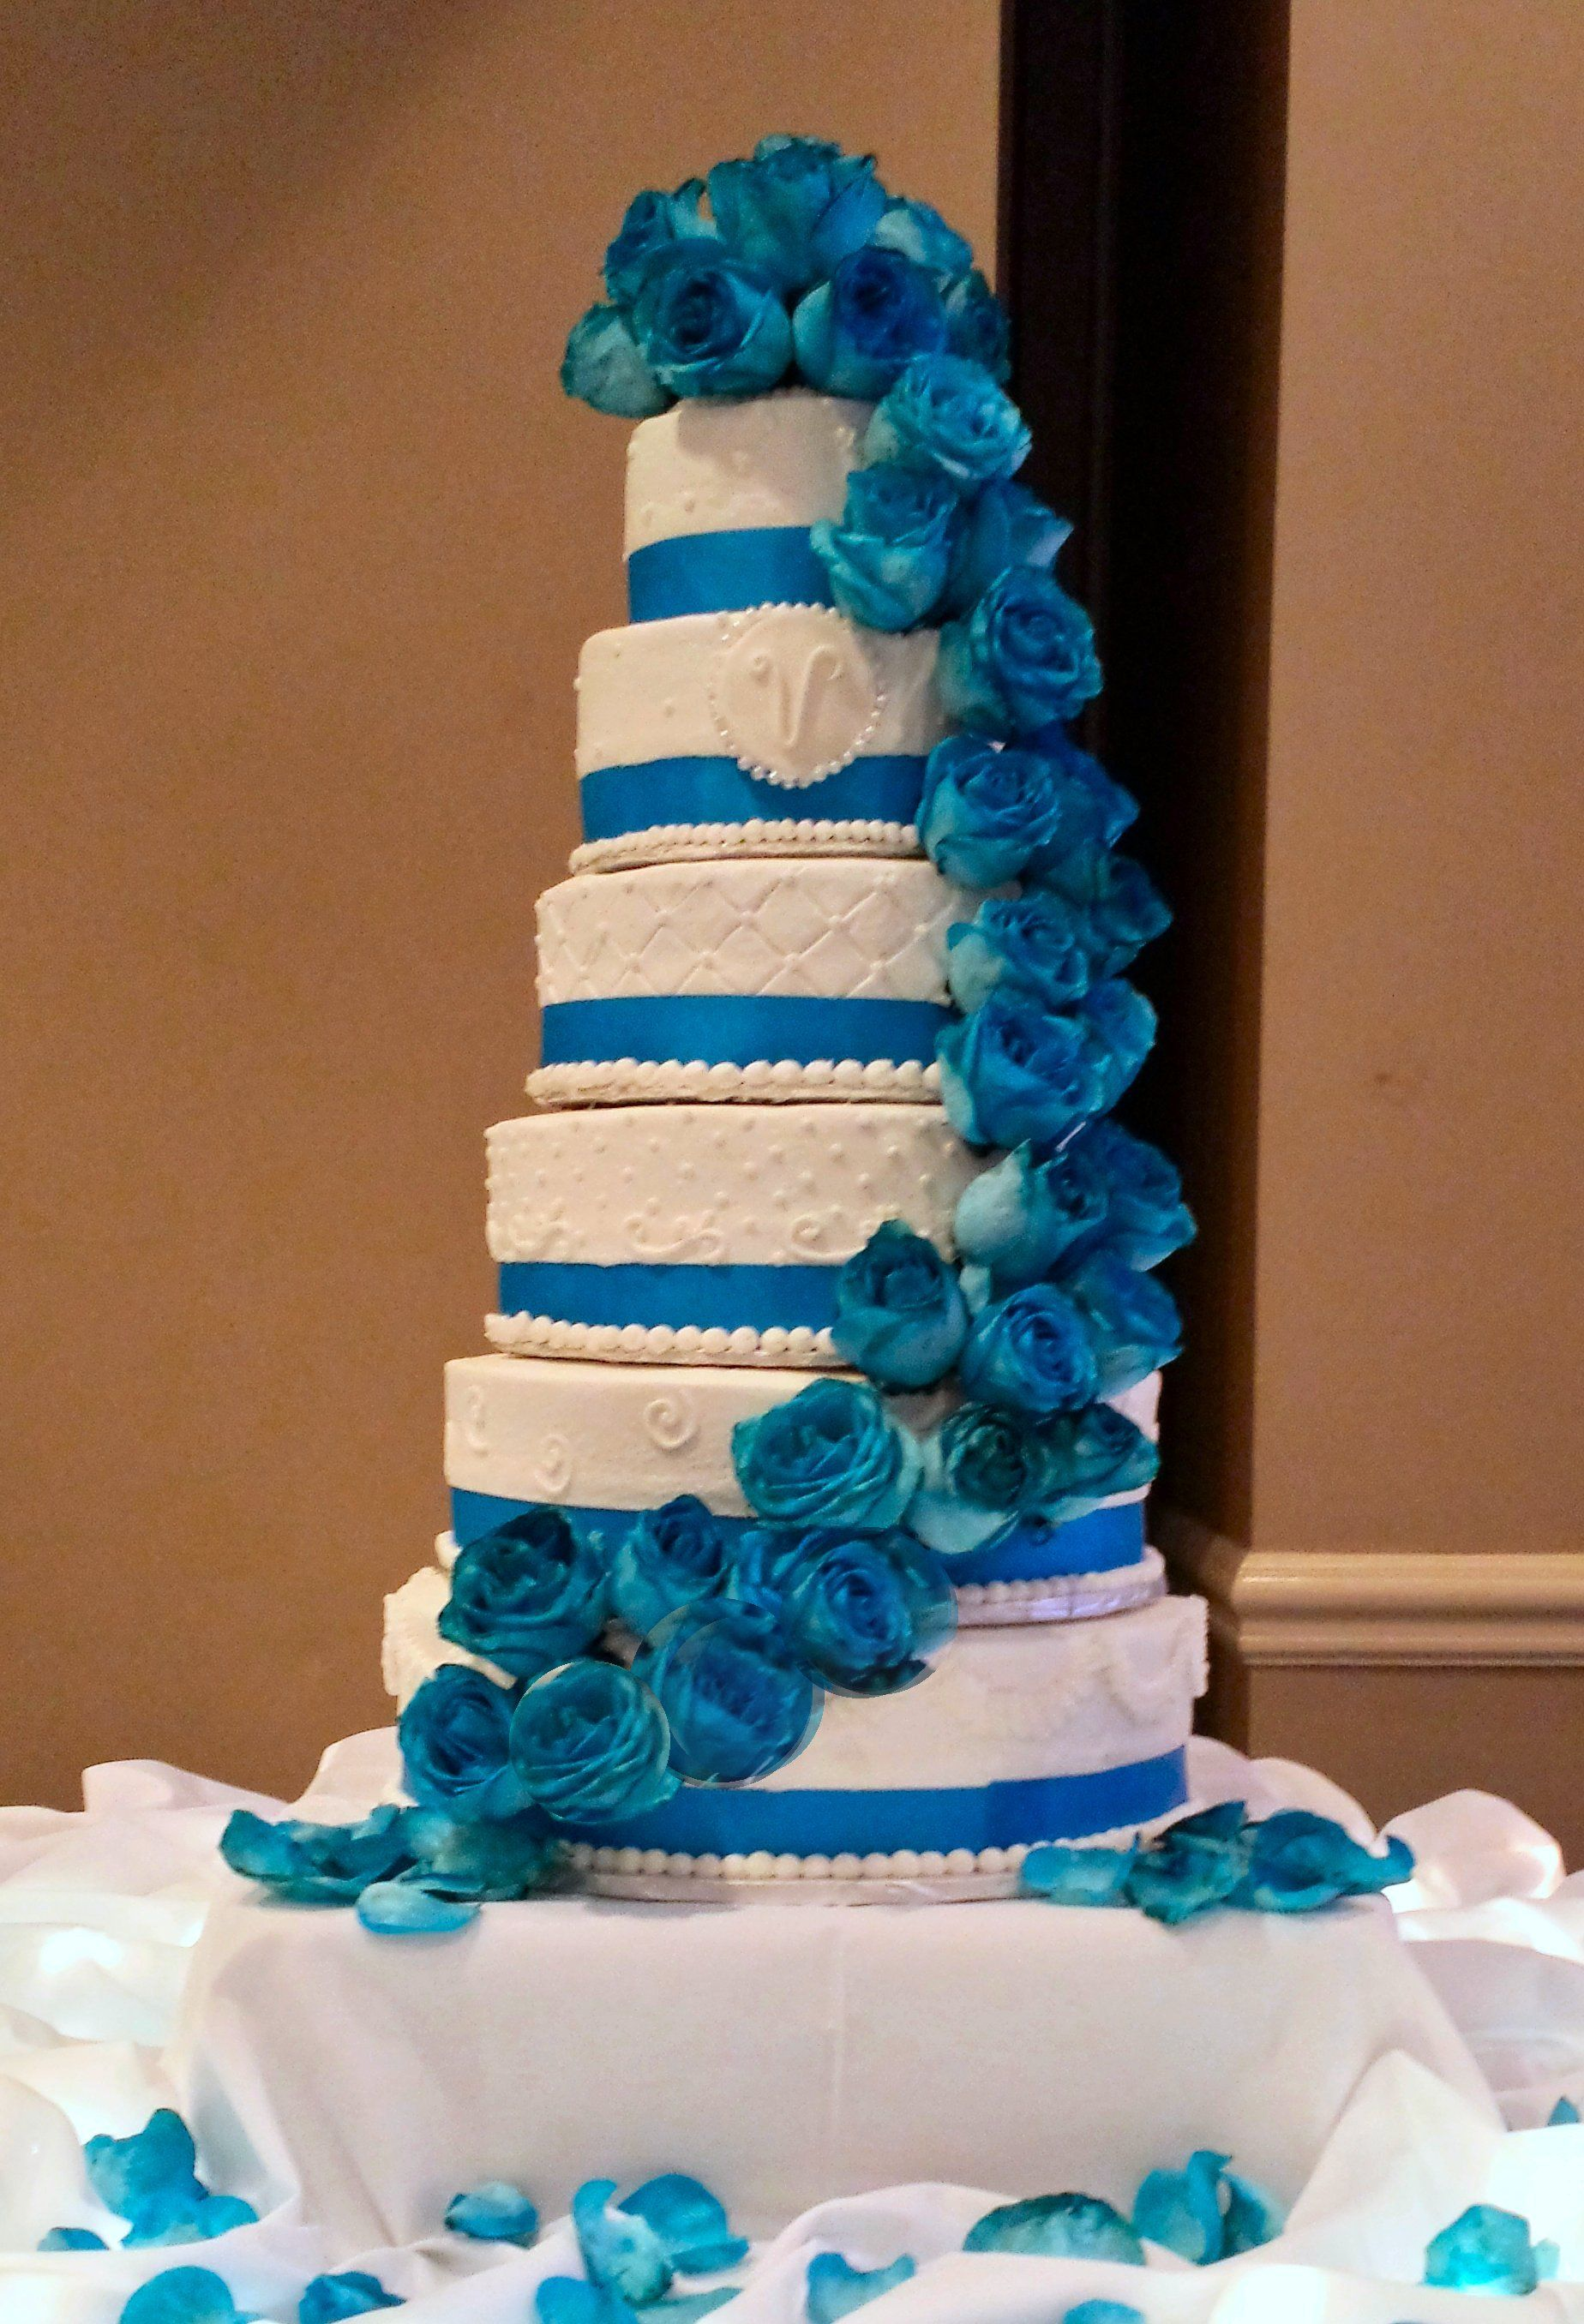 Austinweddingcakelady This Six Tier Cake Serves 300 And Can Be Done In Any Choice Of Colors This One Was Th Quinceanera Cakes Cool Wedding Cakes Tiered Cakes